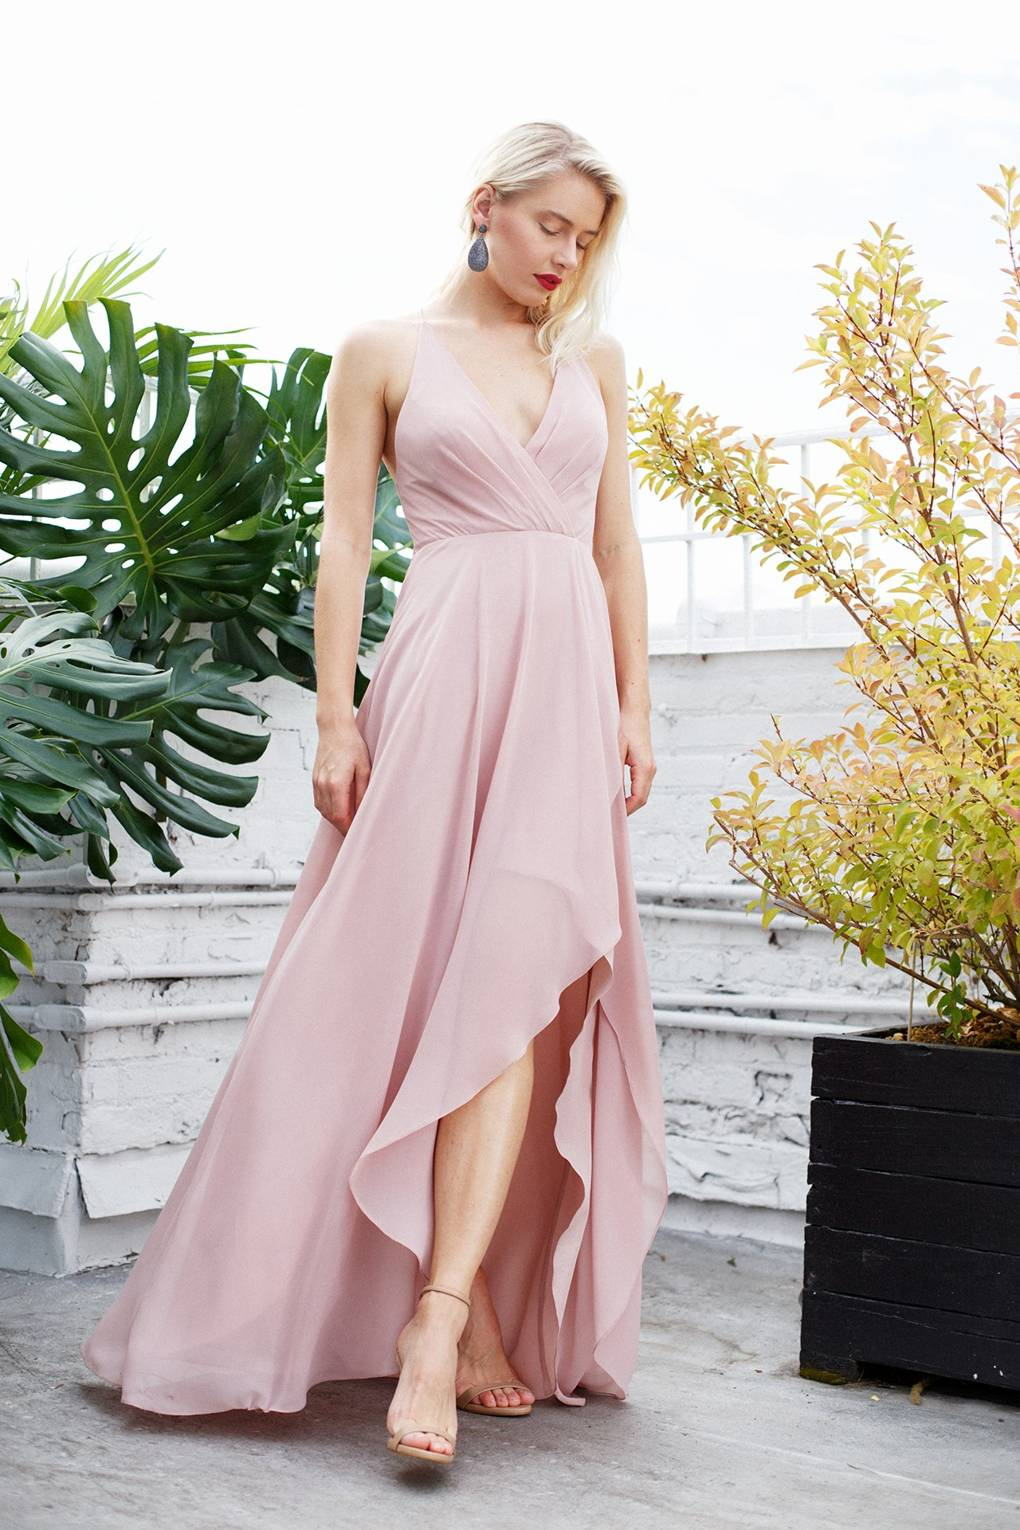 Supper Pink Bridesmaid Dresses Design 2018